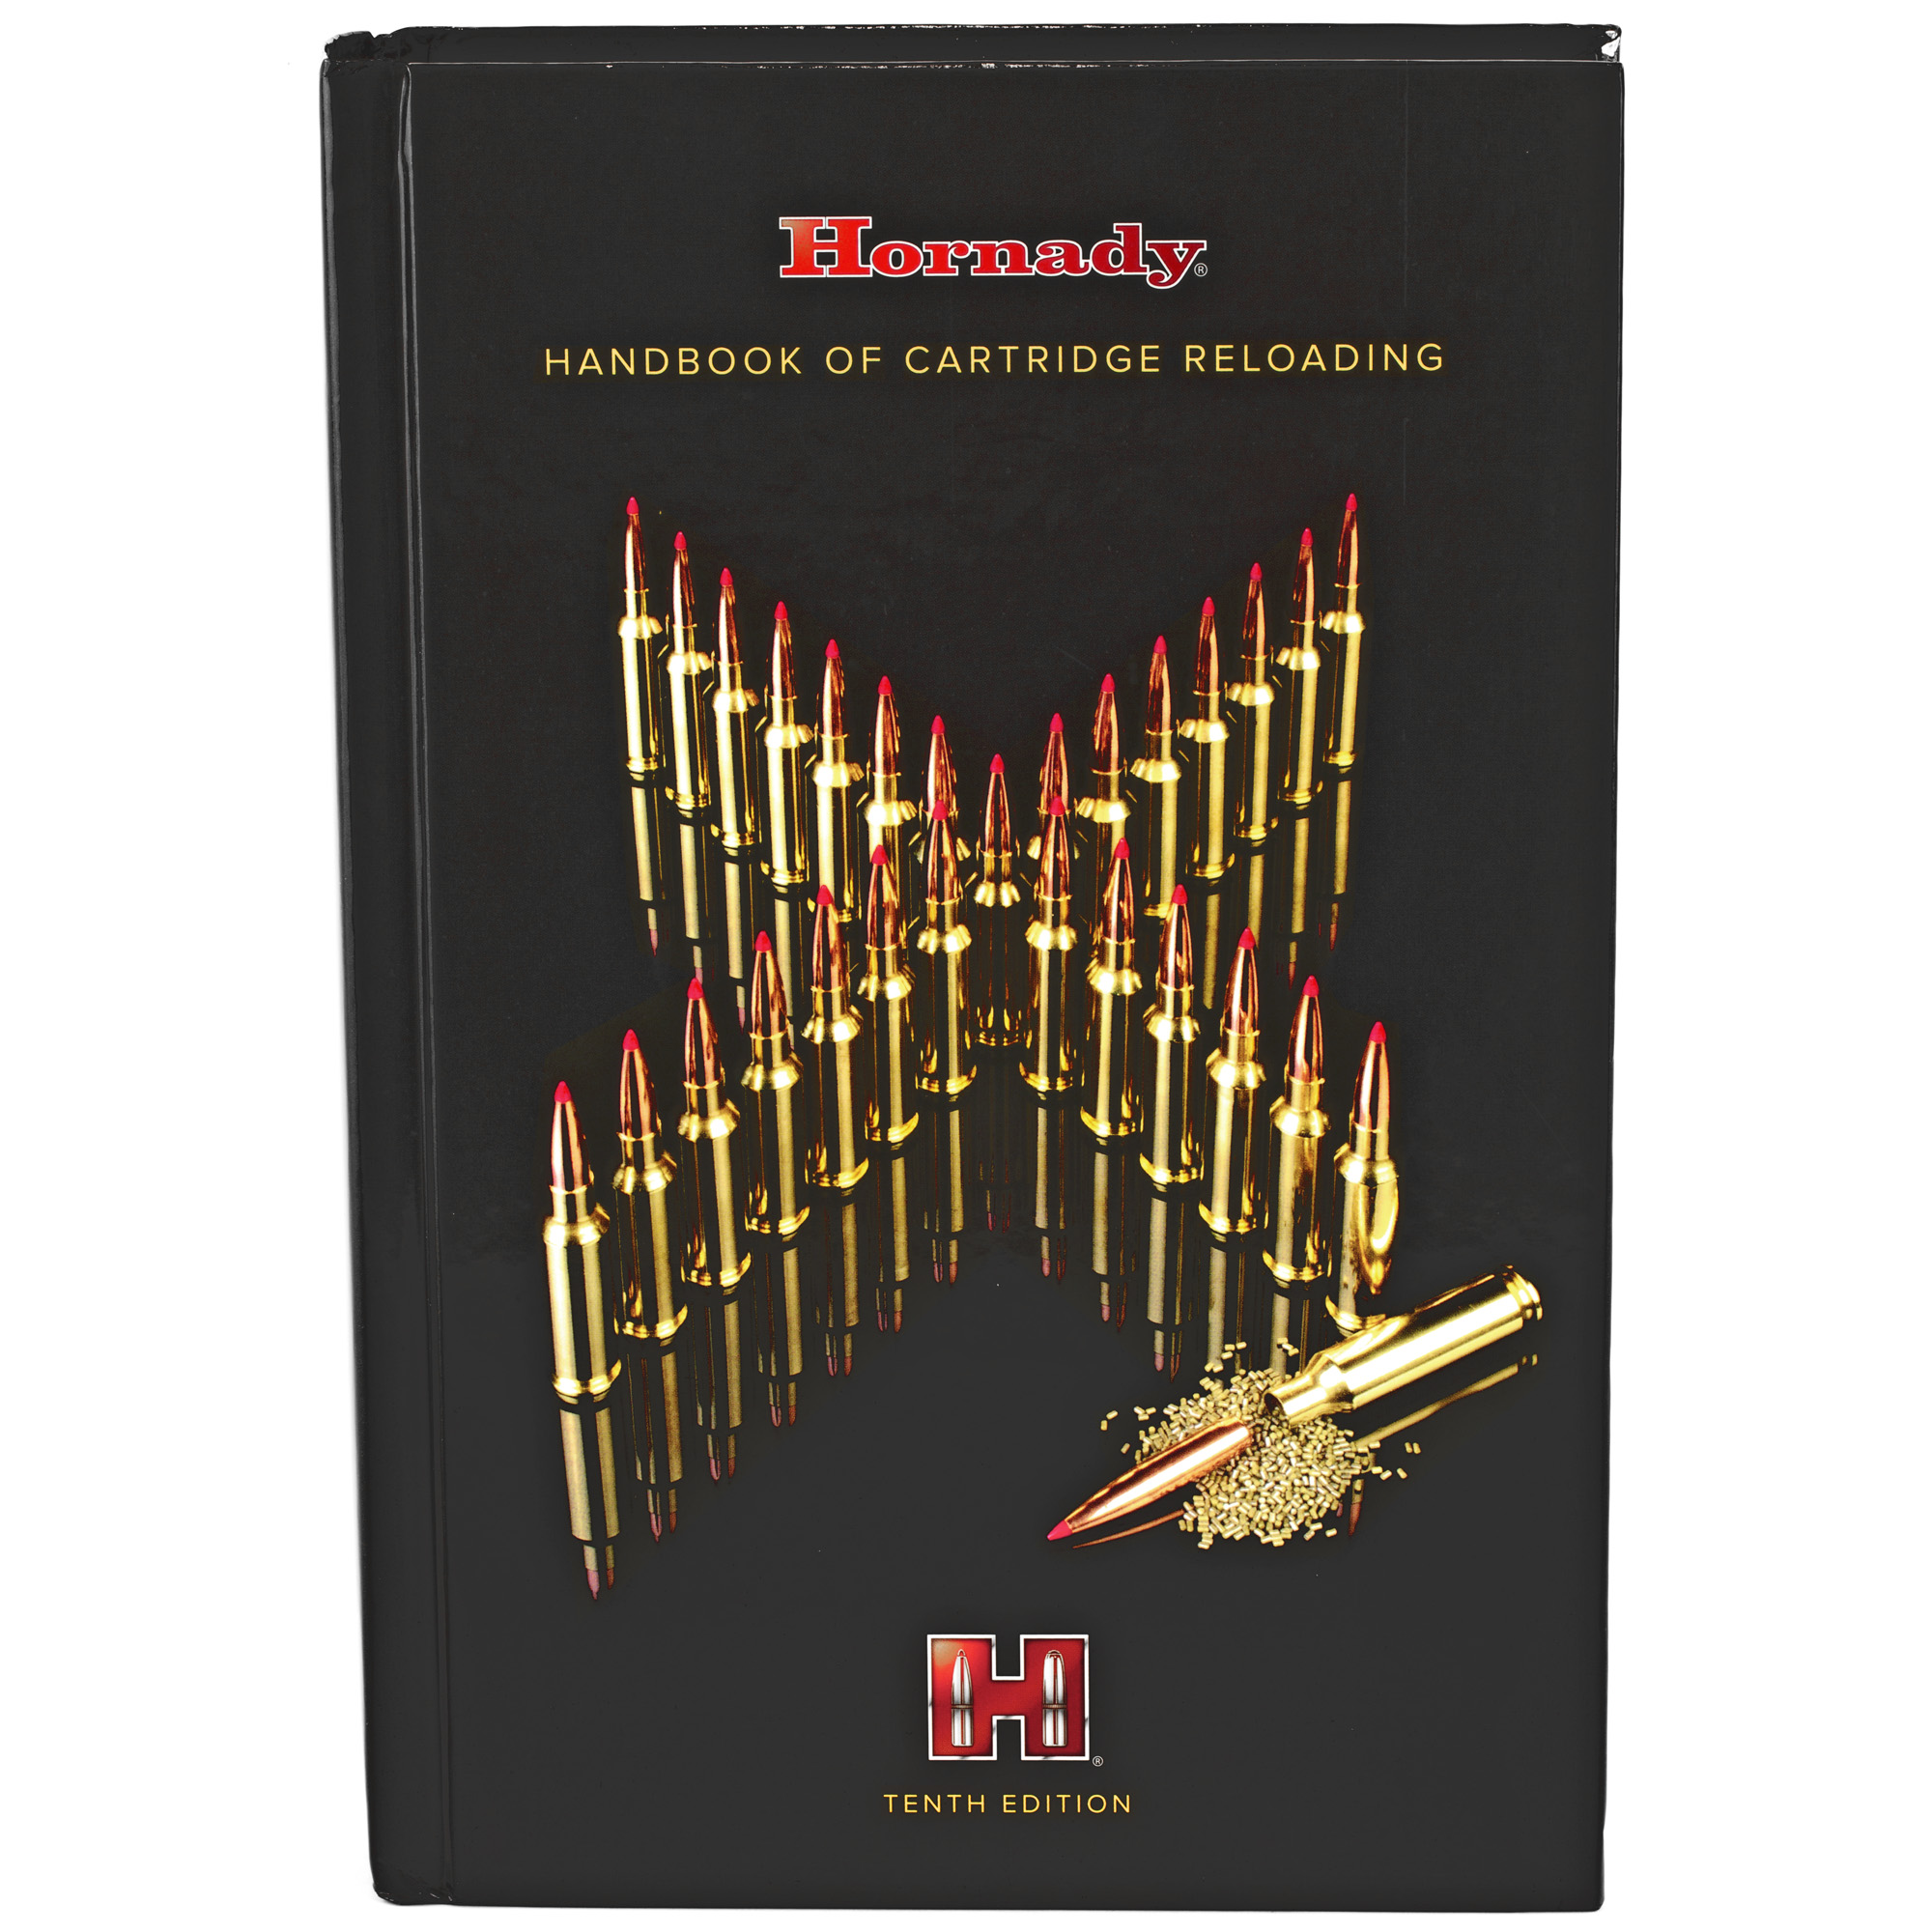 Hrndy Hornady Handbook 10th Edition